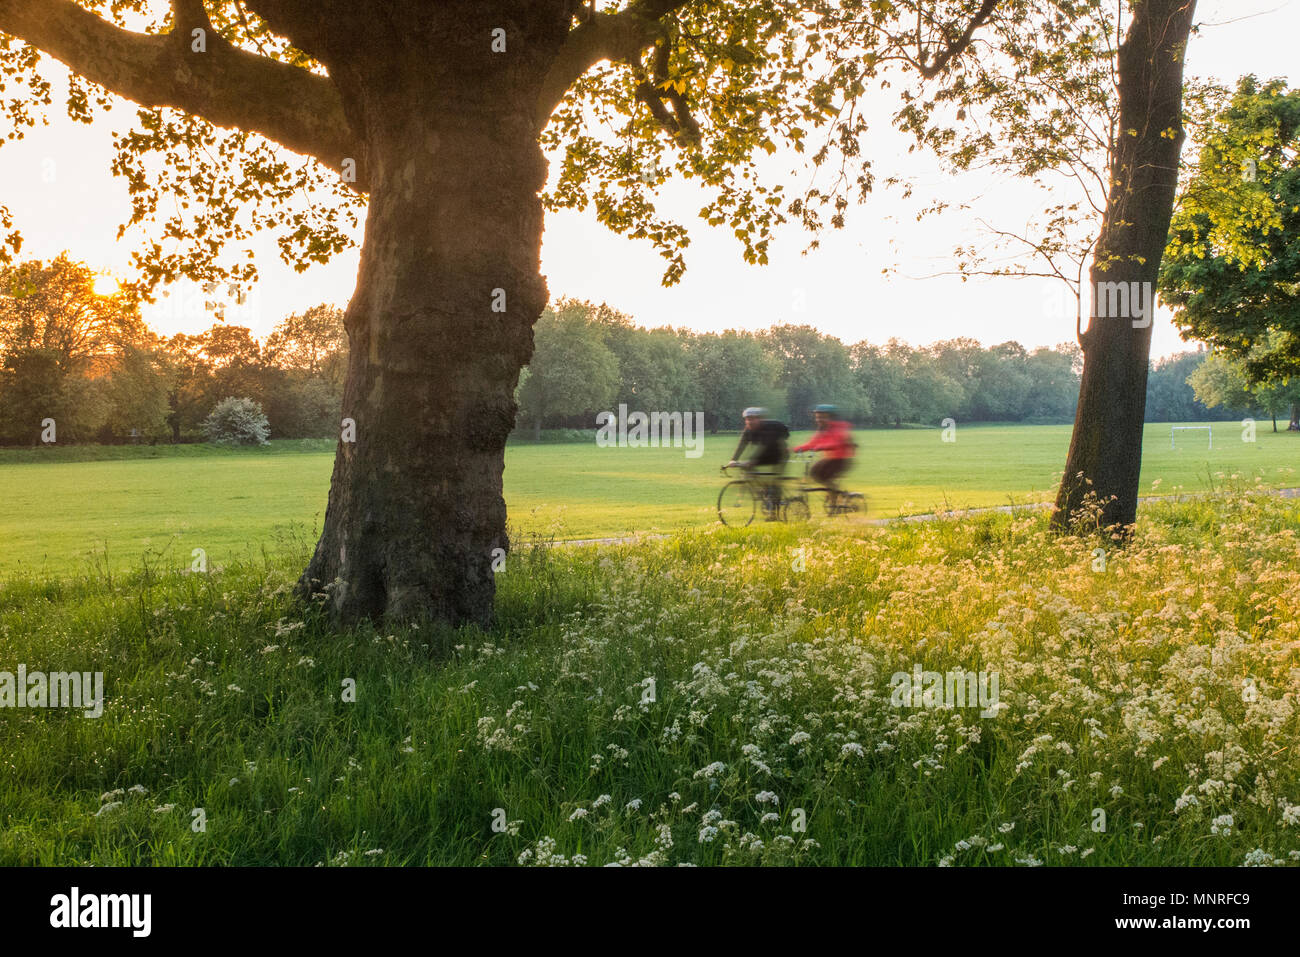 Cycling home in a London park - Stock Image